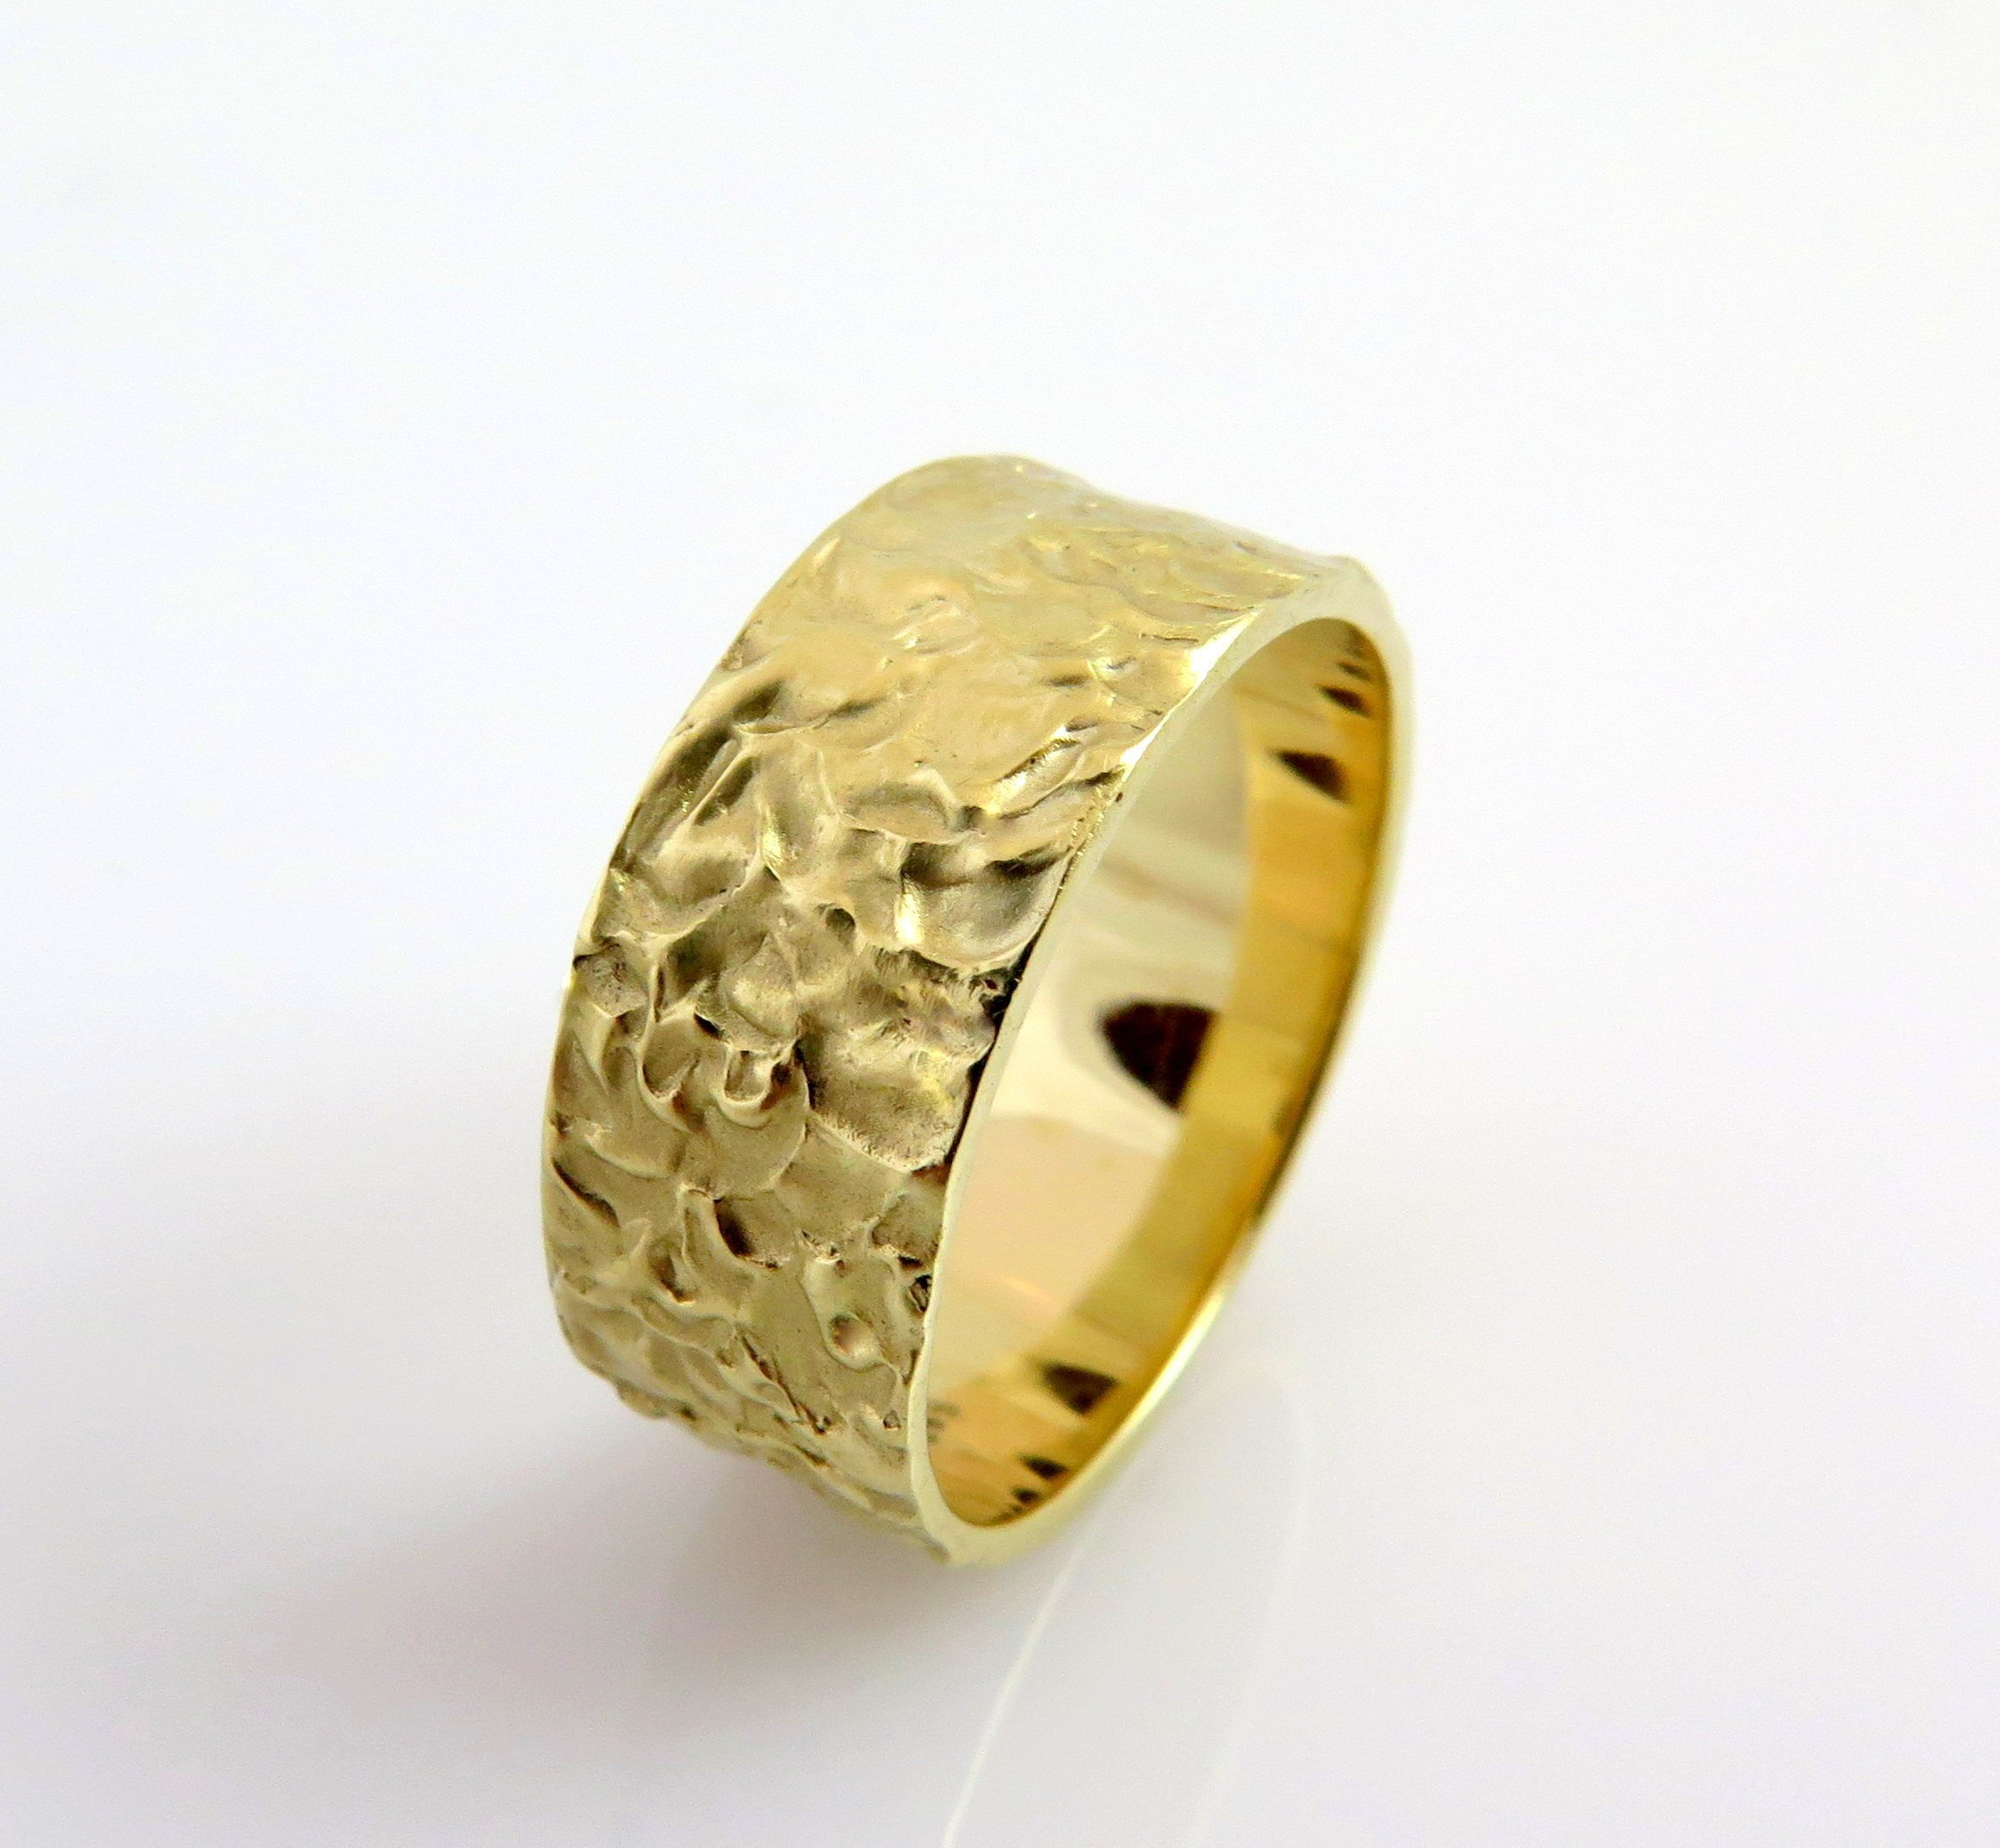 Wedding Band Yellow Gold, 14K Gold Hammered Wedding Band, Rustic wedding Ring, Modern Wedding Band, Textured Gold Ring, Wide wedding band